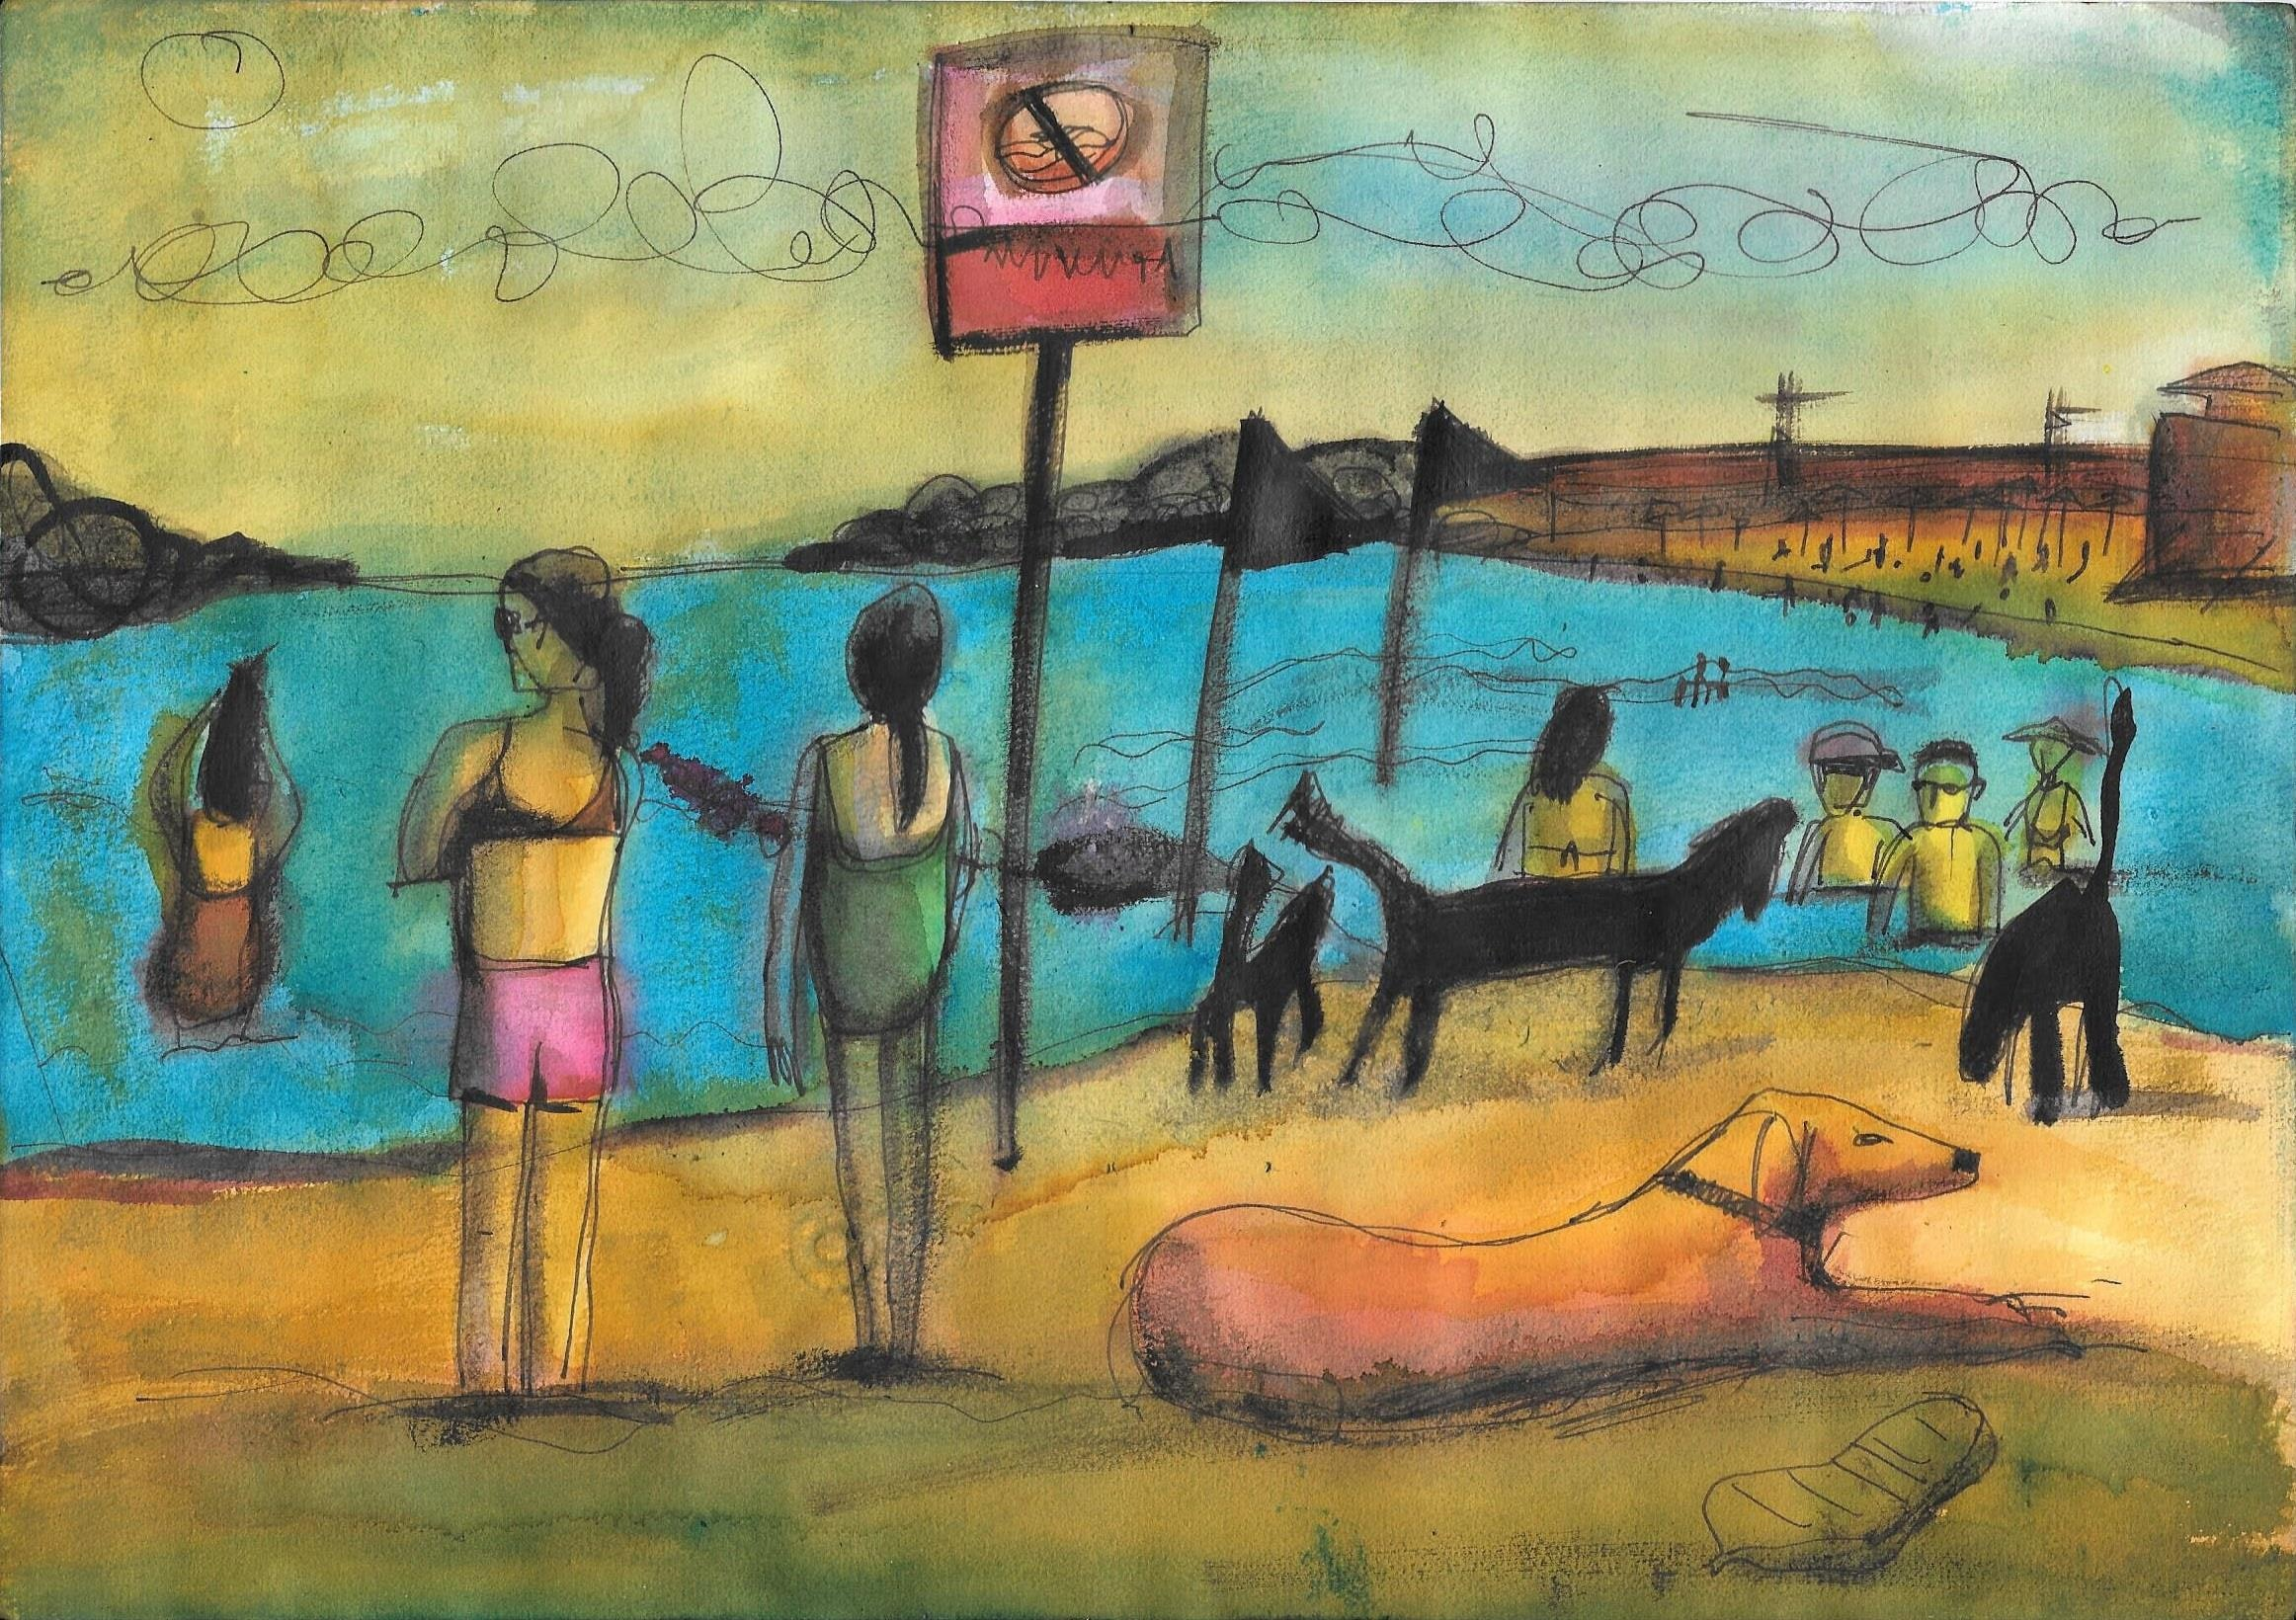 Einat Aloni - The beach, mixed media on paper, 30X20 cm